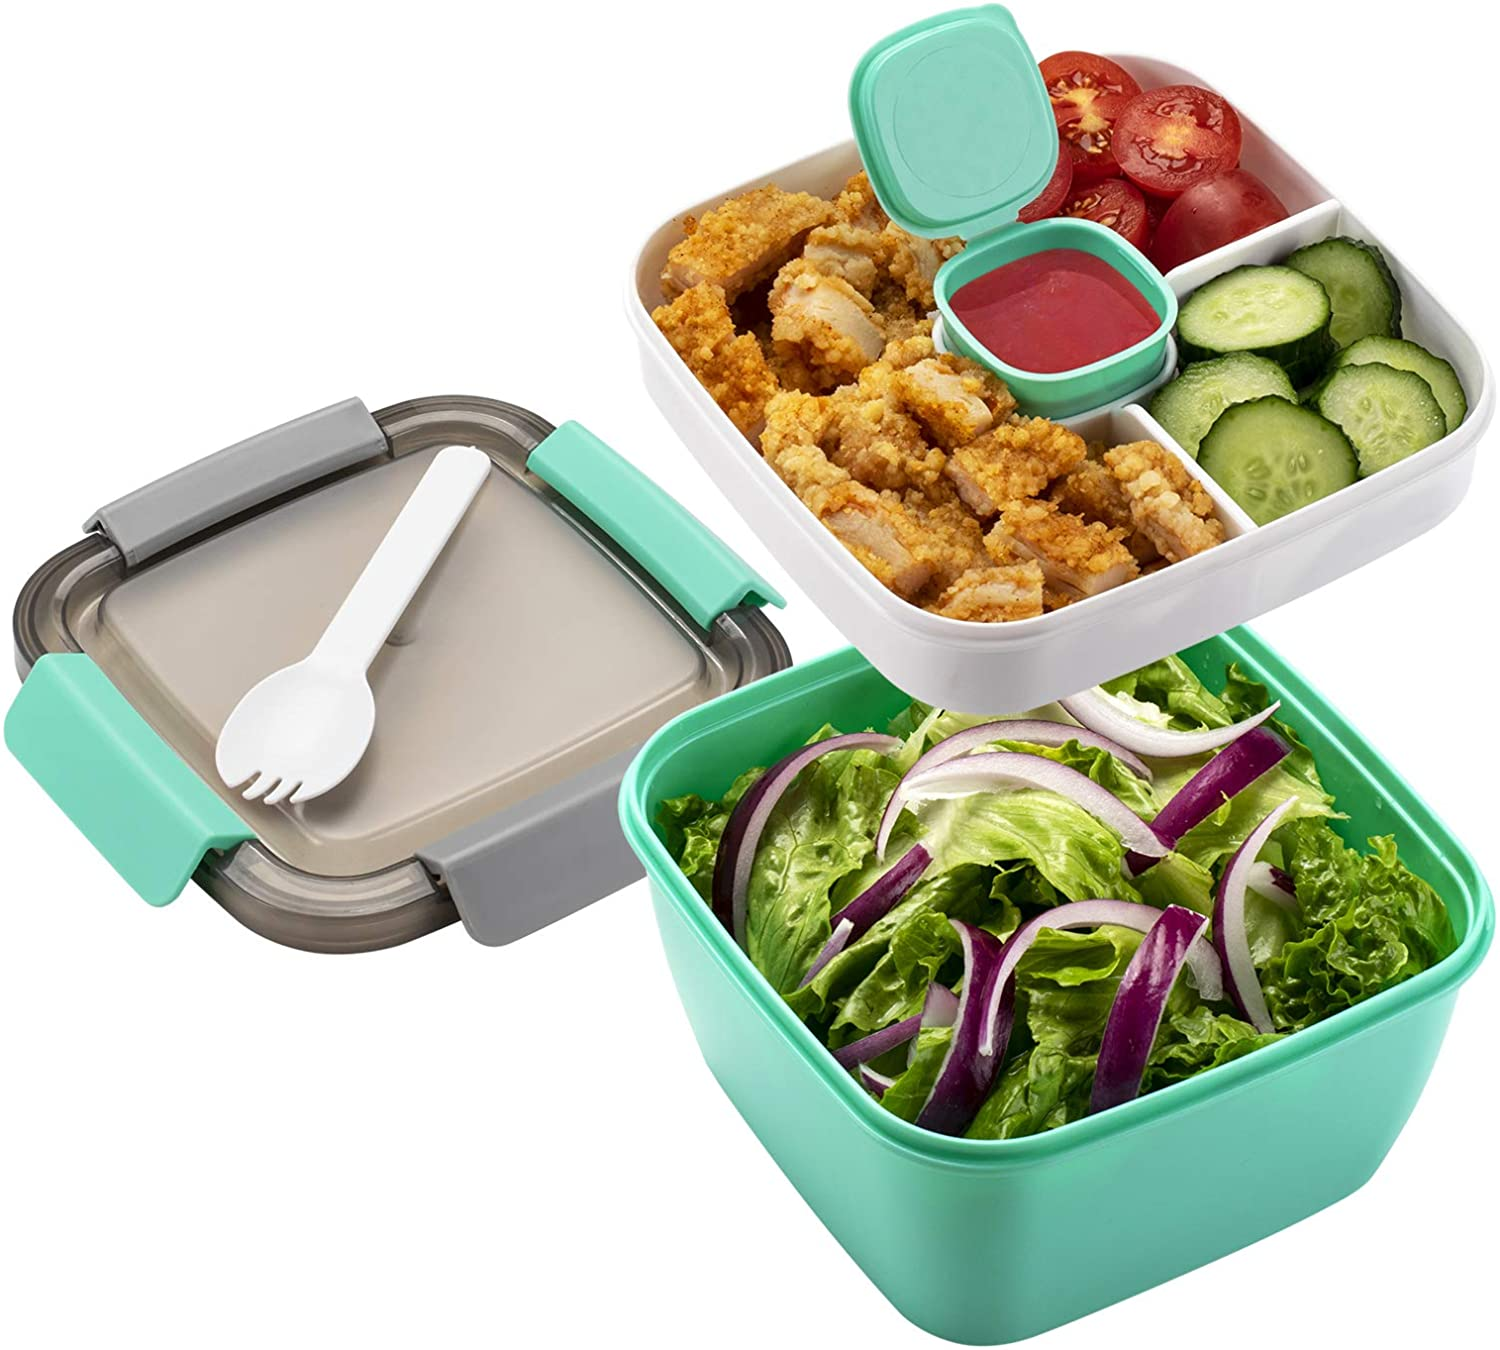 Freshmage Salad Lunch Container To Go, 52-oz Salad Bowls with 3 Compartments, Salad Dressings Container for Salad Toppings, Snacks, Men, Women (Green)